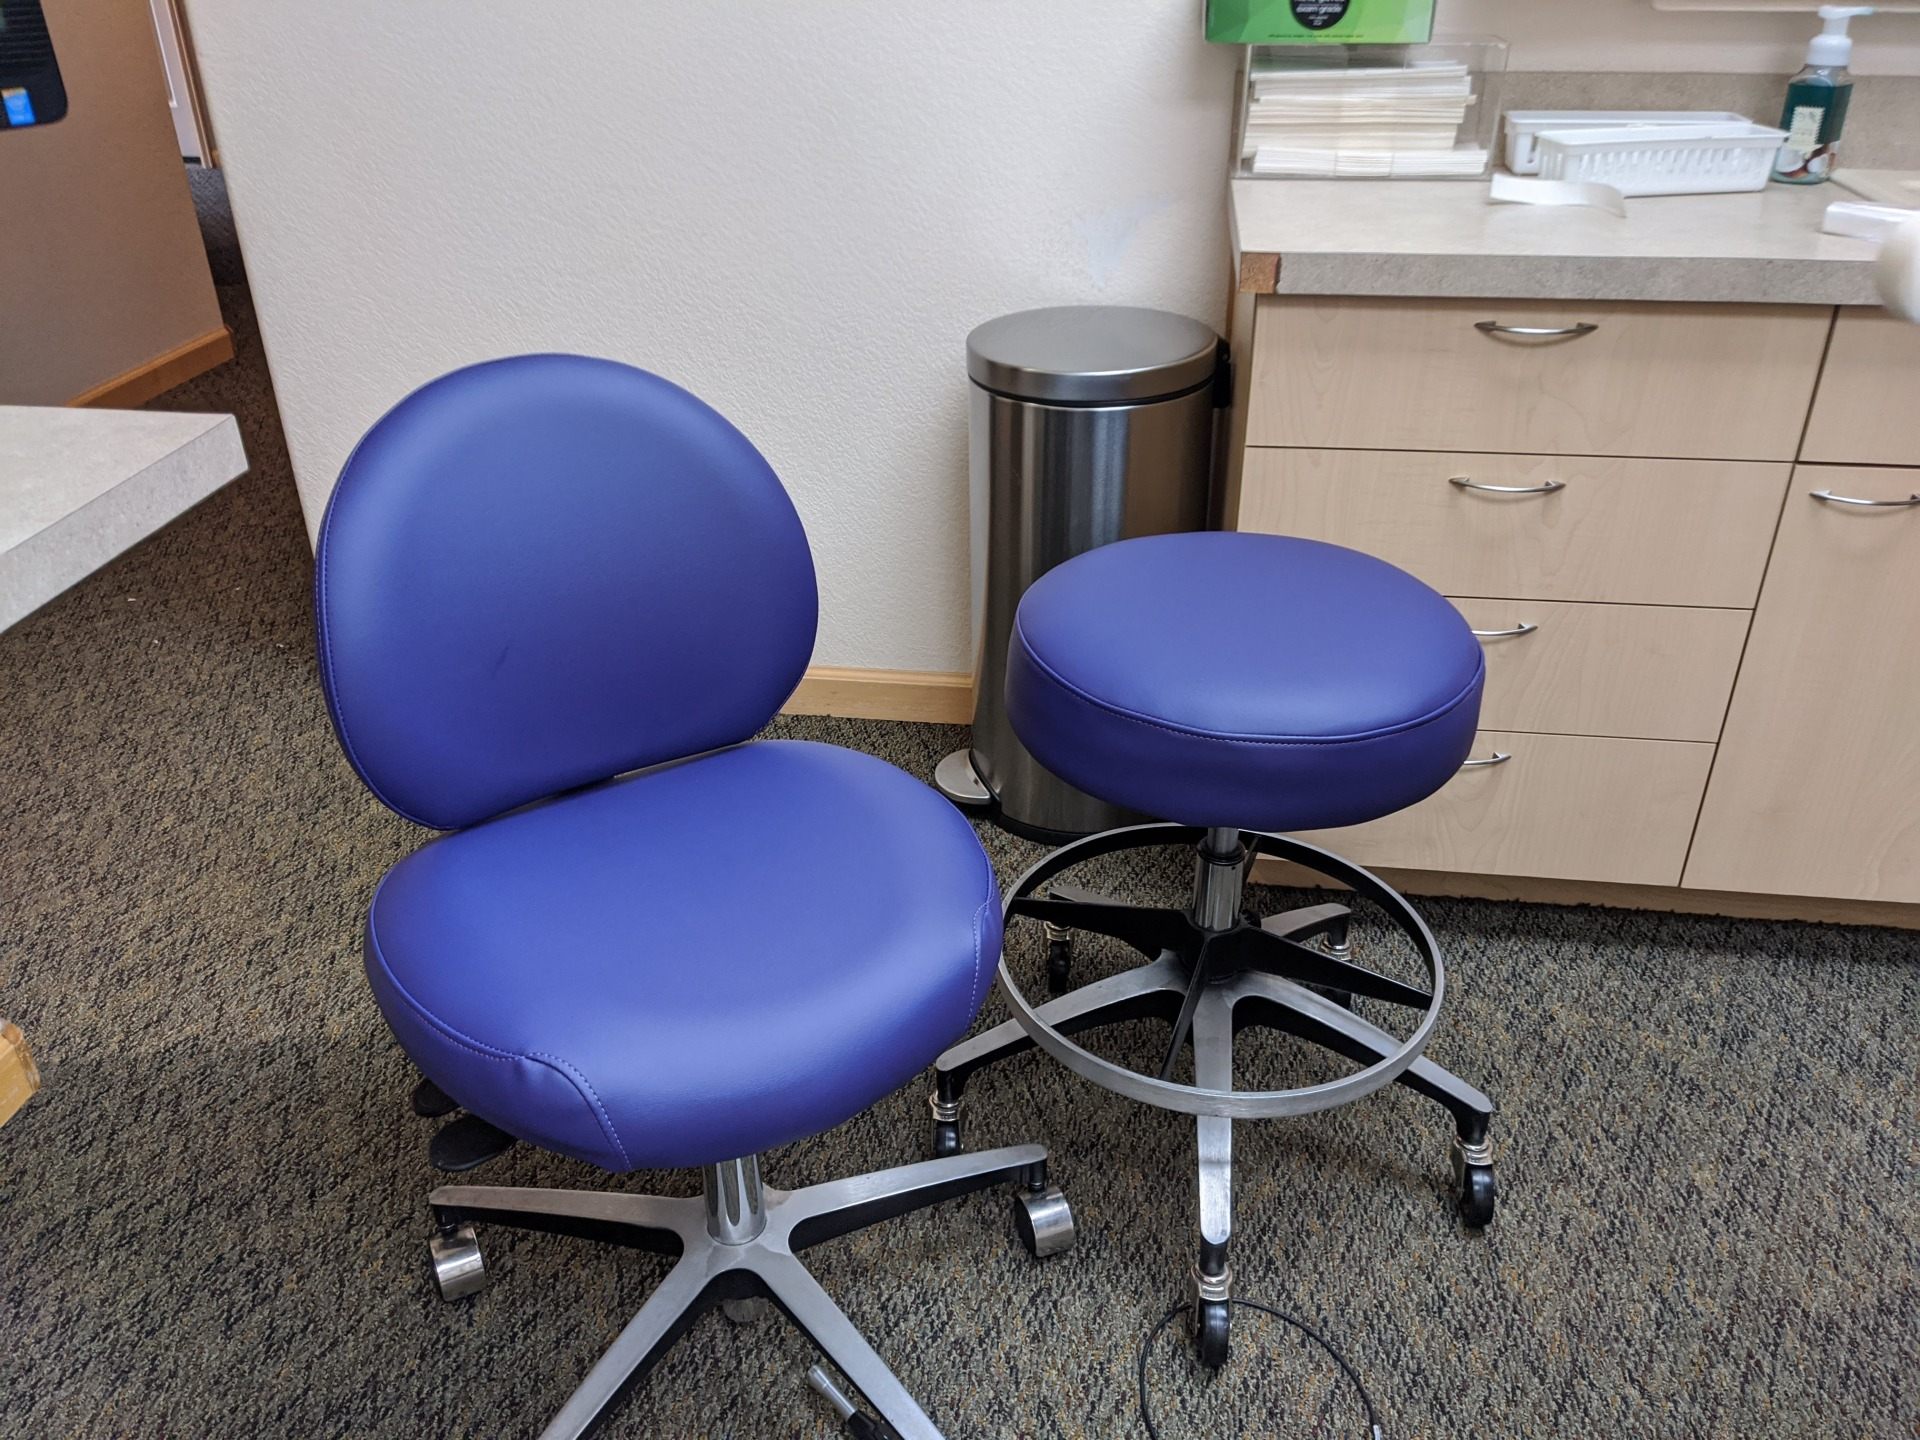 Dentist Chair and Stool Olympus Deep Violet Vinyl Medical Grade Vinyl